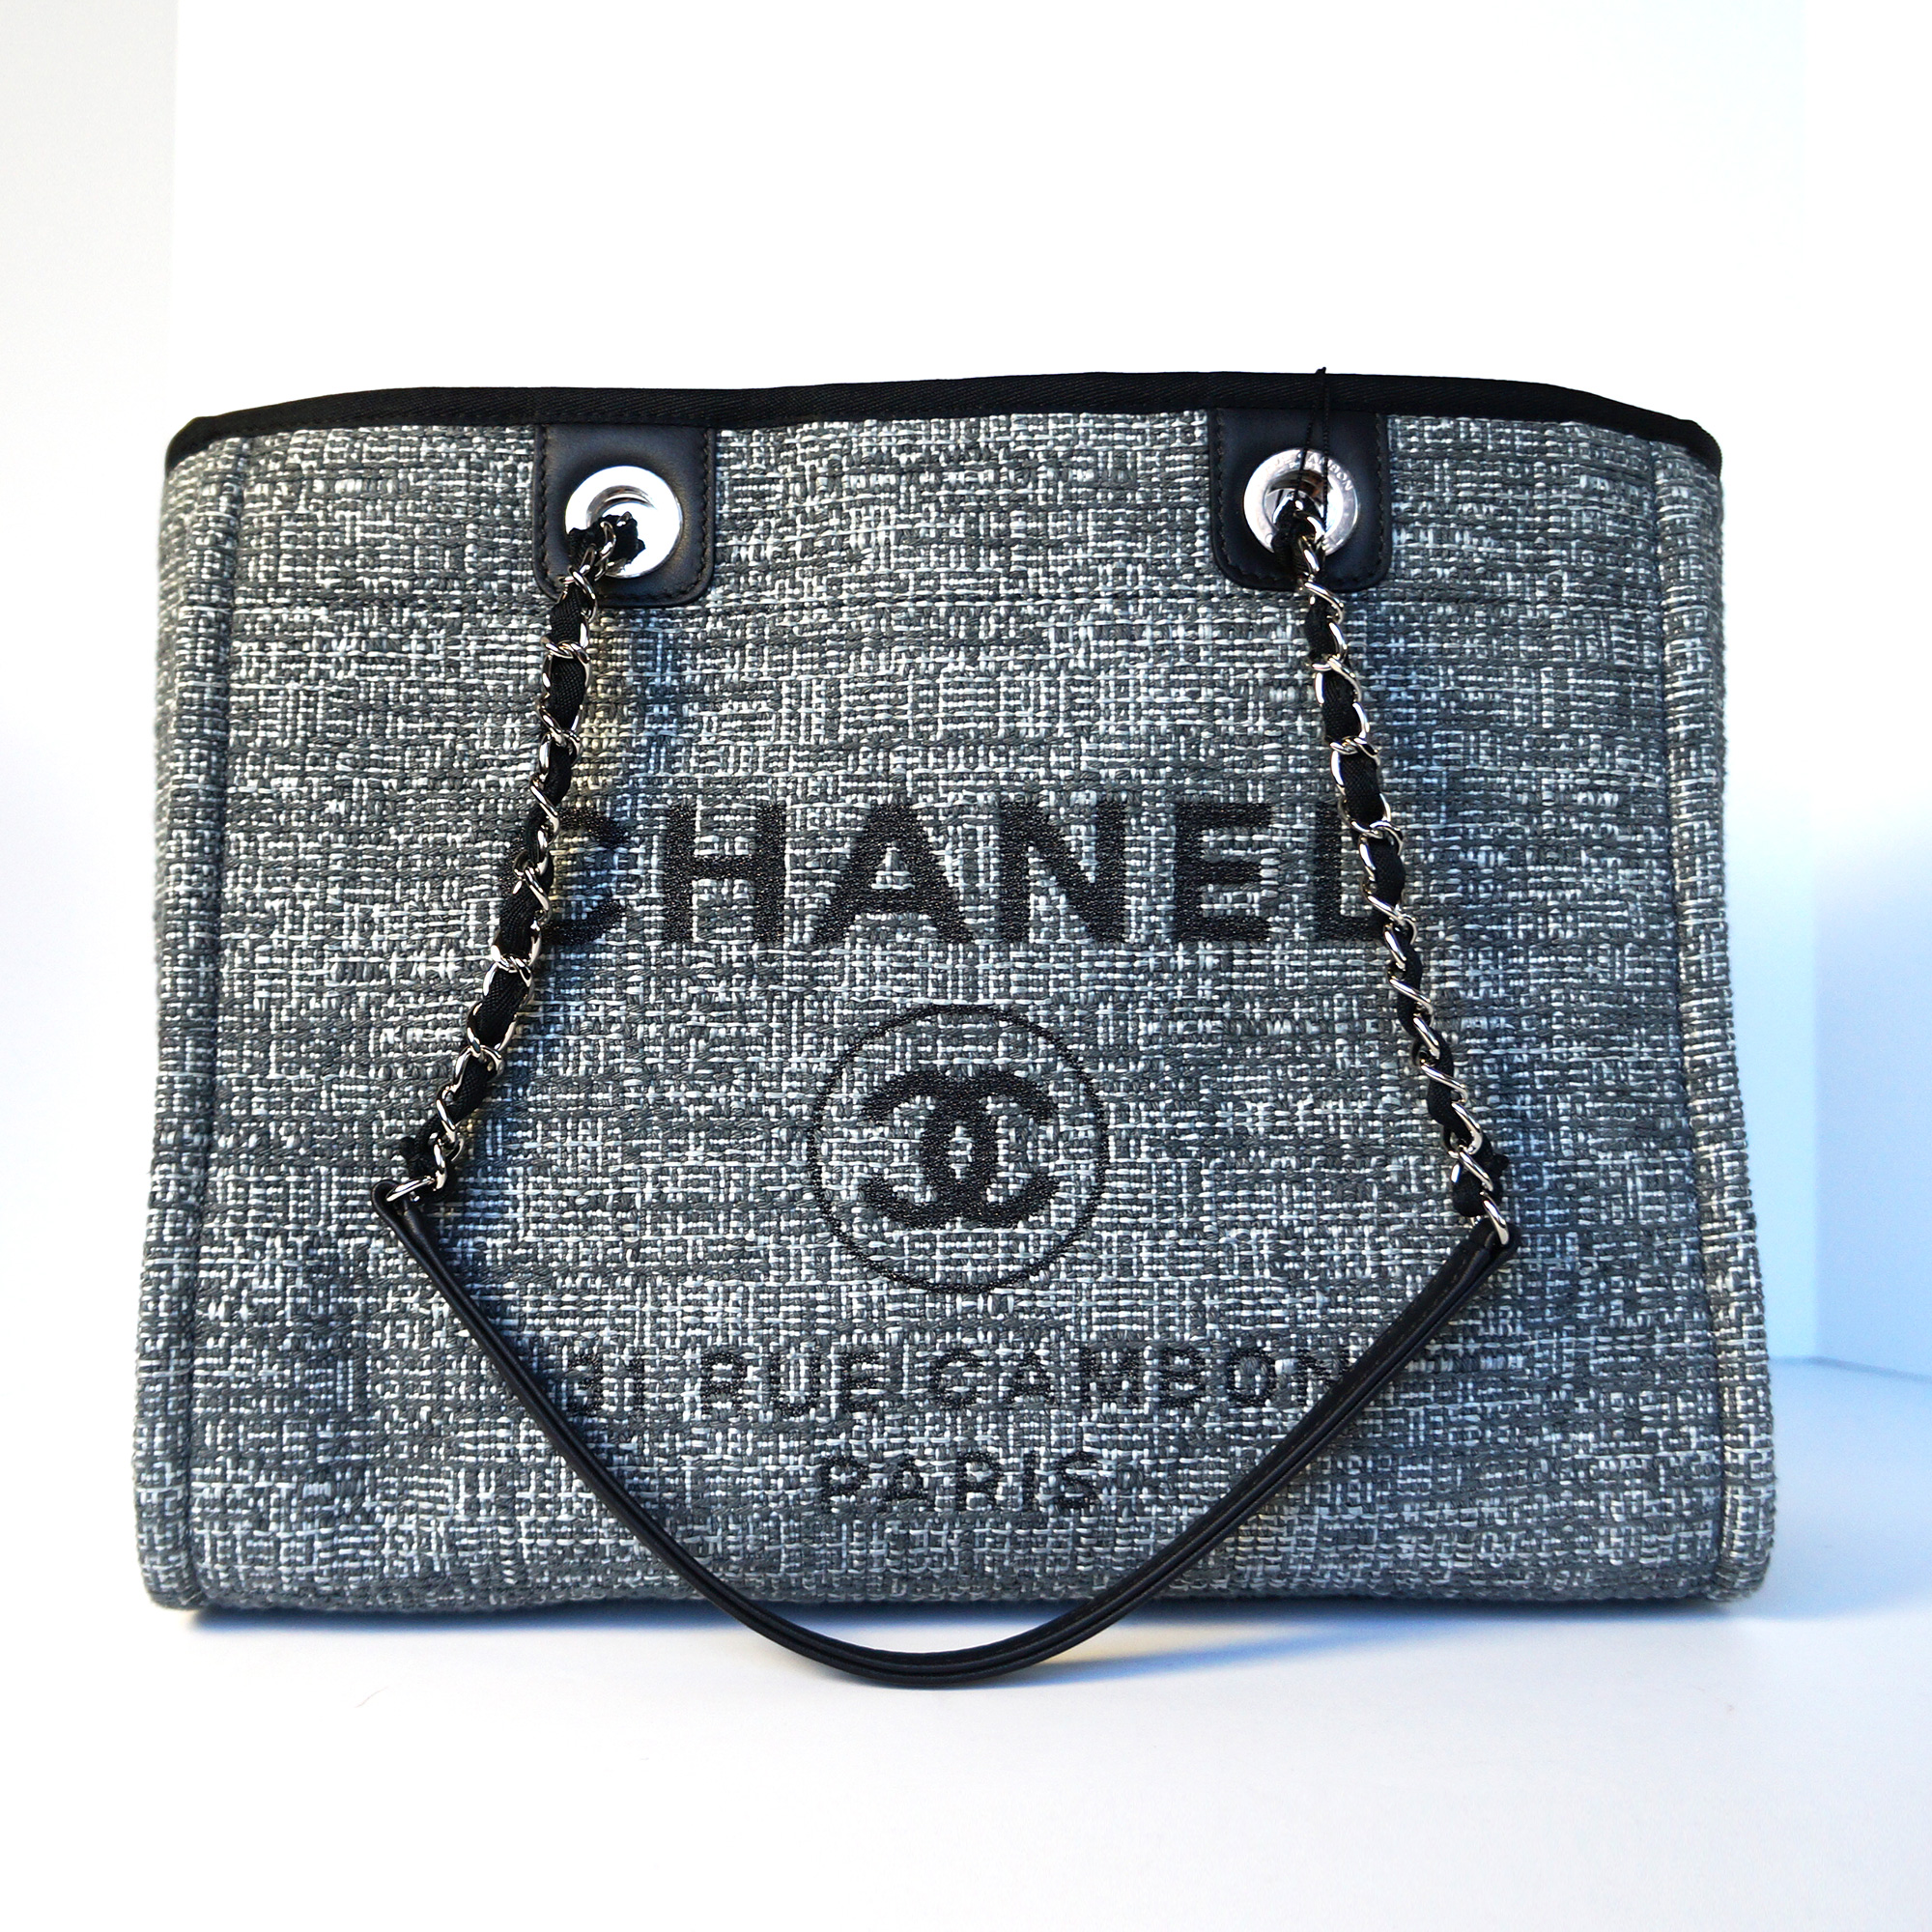 5df34ccf096c Chanel 2018 Limited Edition Deauville Large Shopping Tote Bag Charcoal Tweed